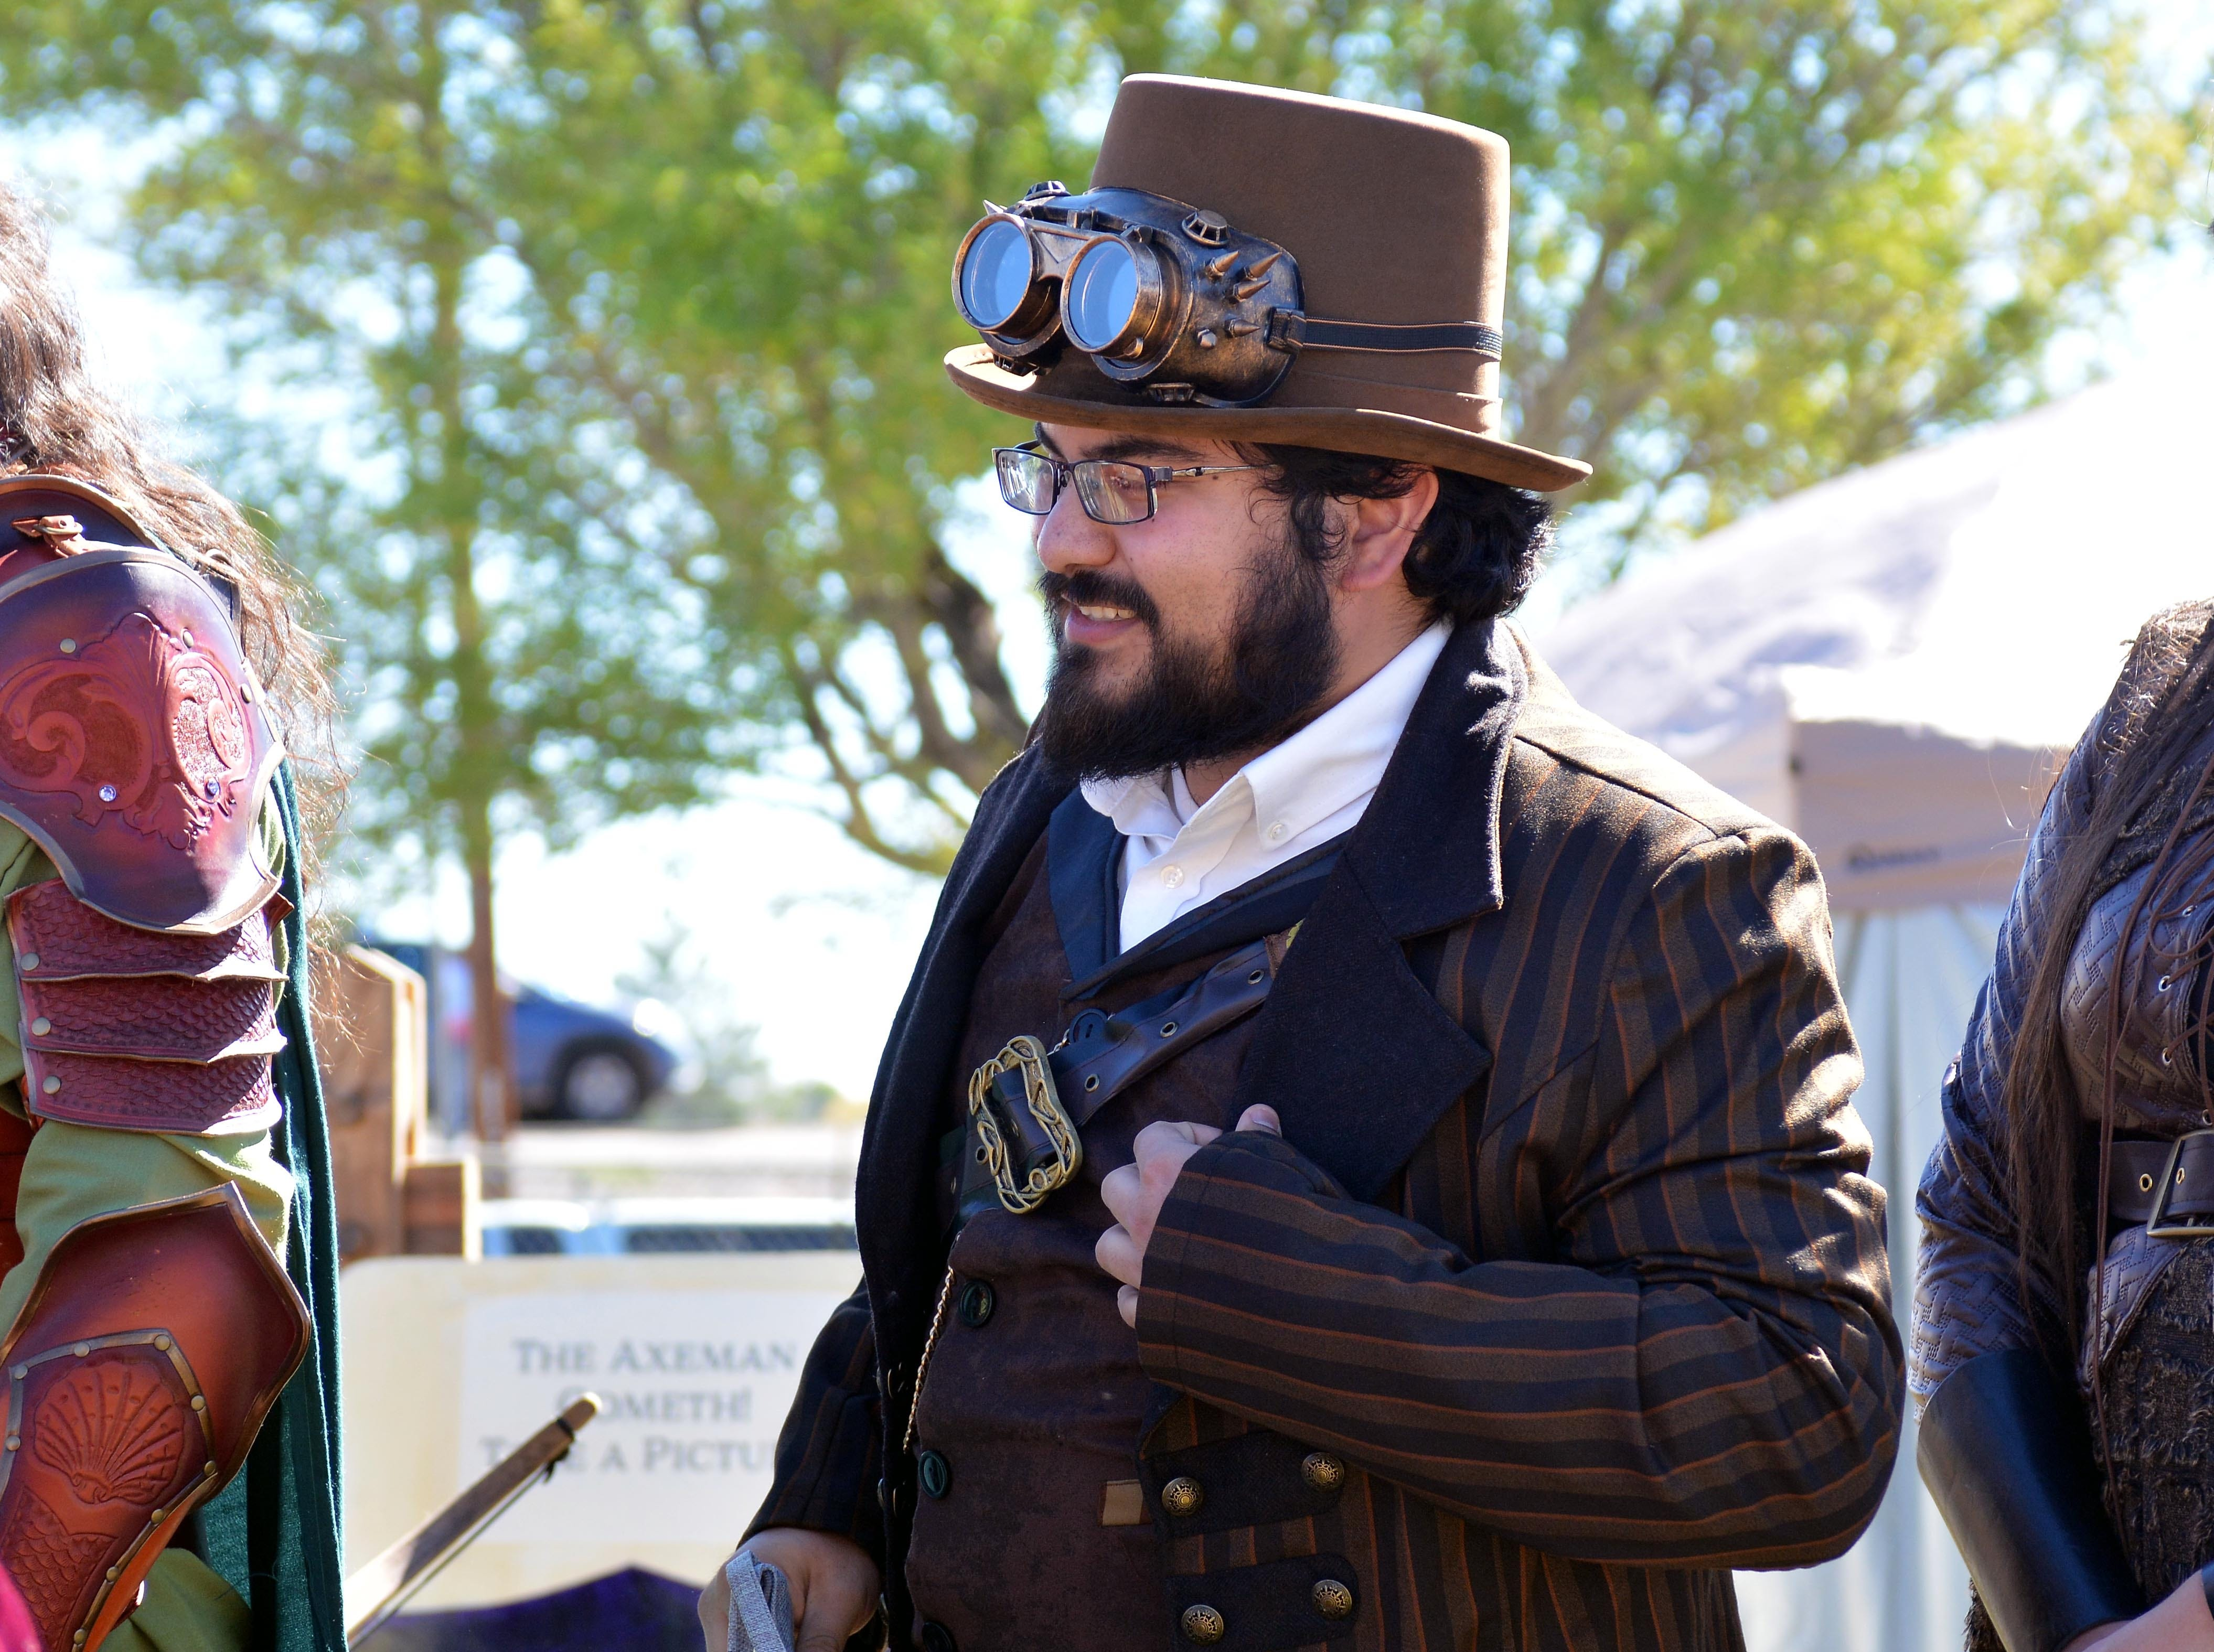 """This costume won for the """"Most Fanciful"""" at this year's Faire.  Photo taken 11/3/18."""